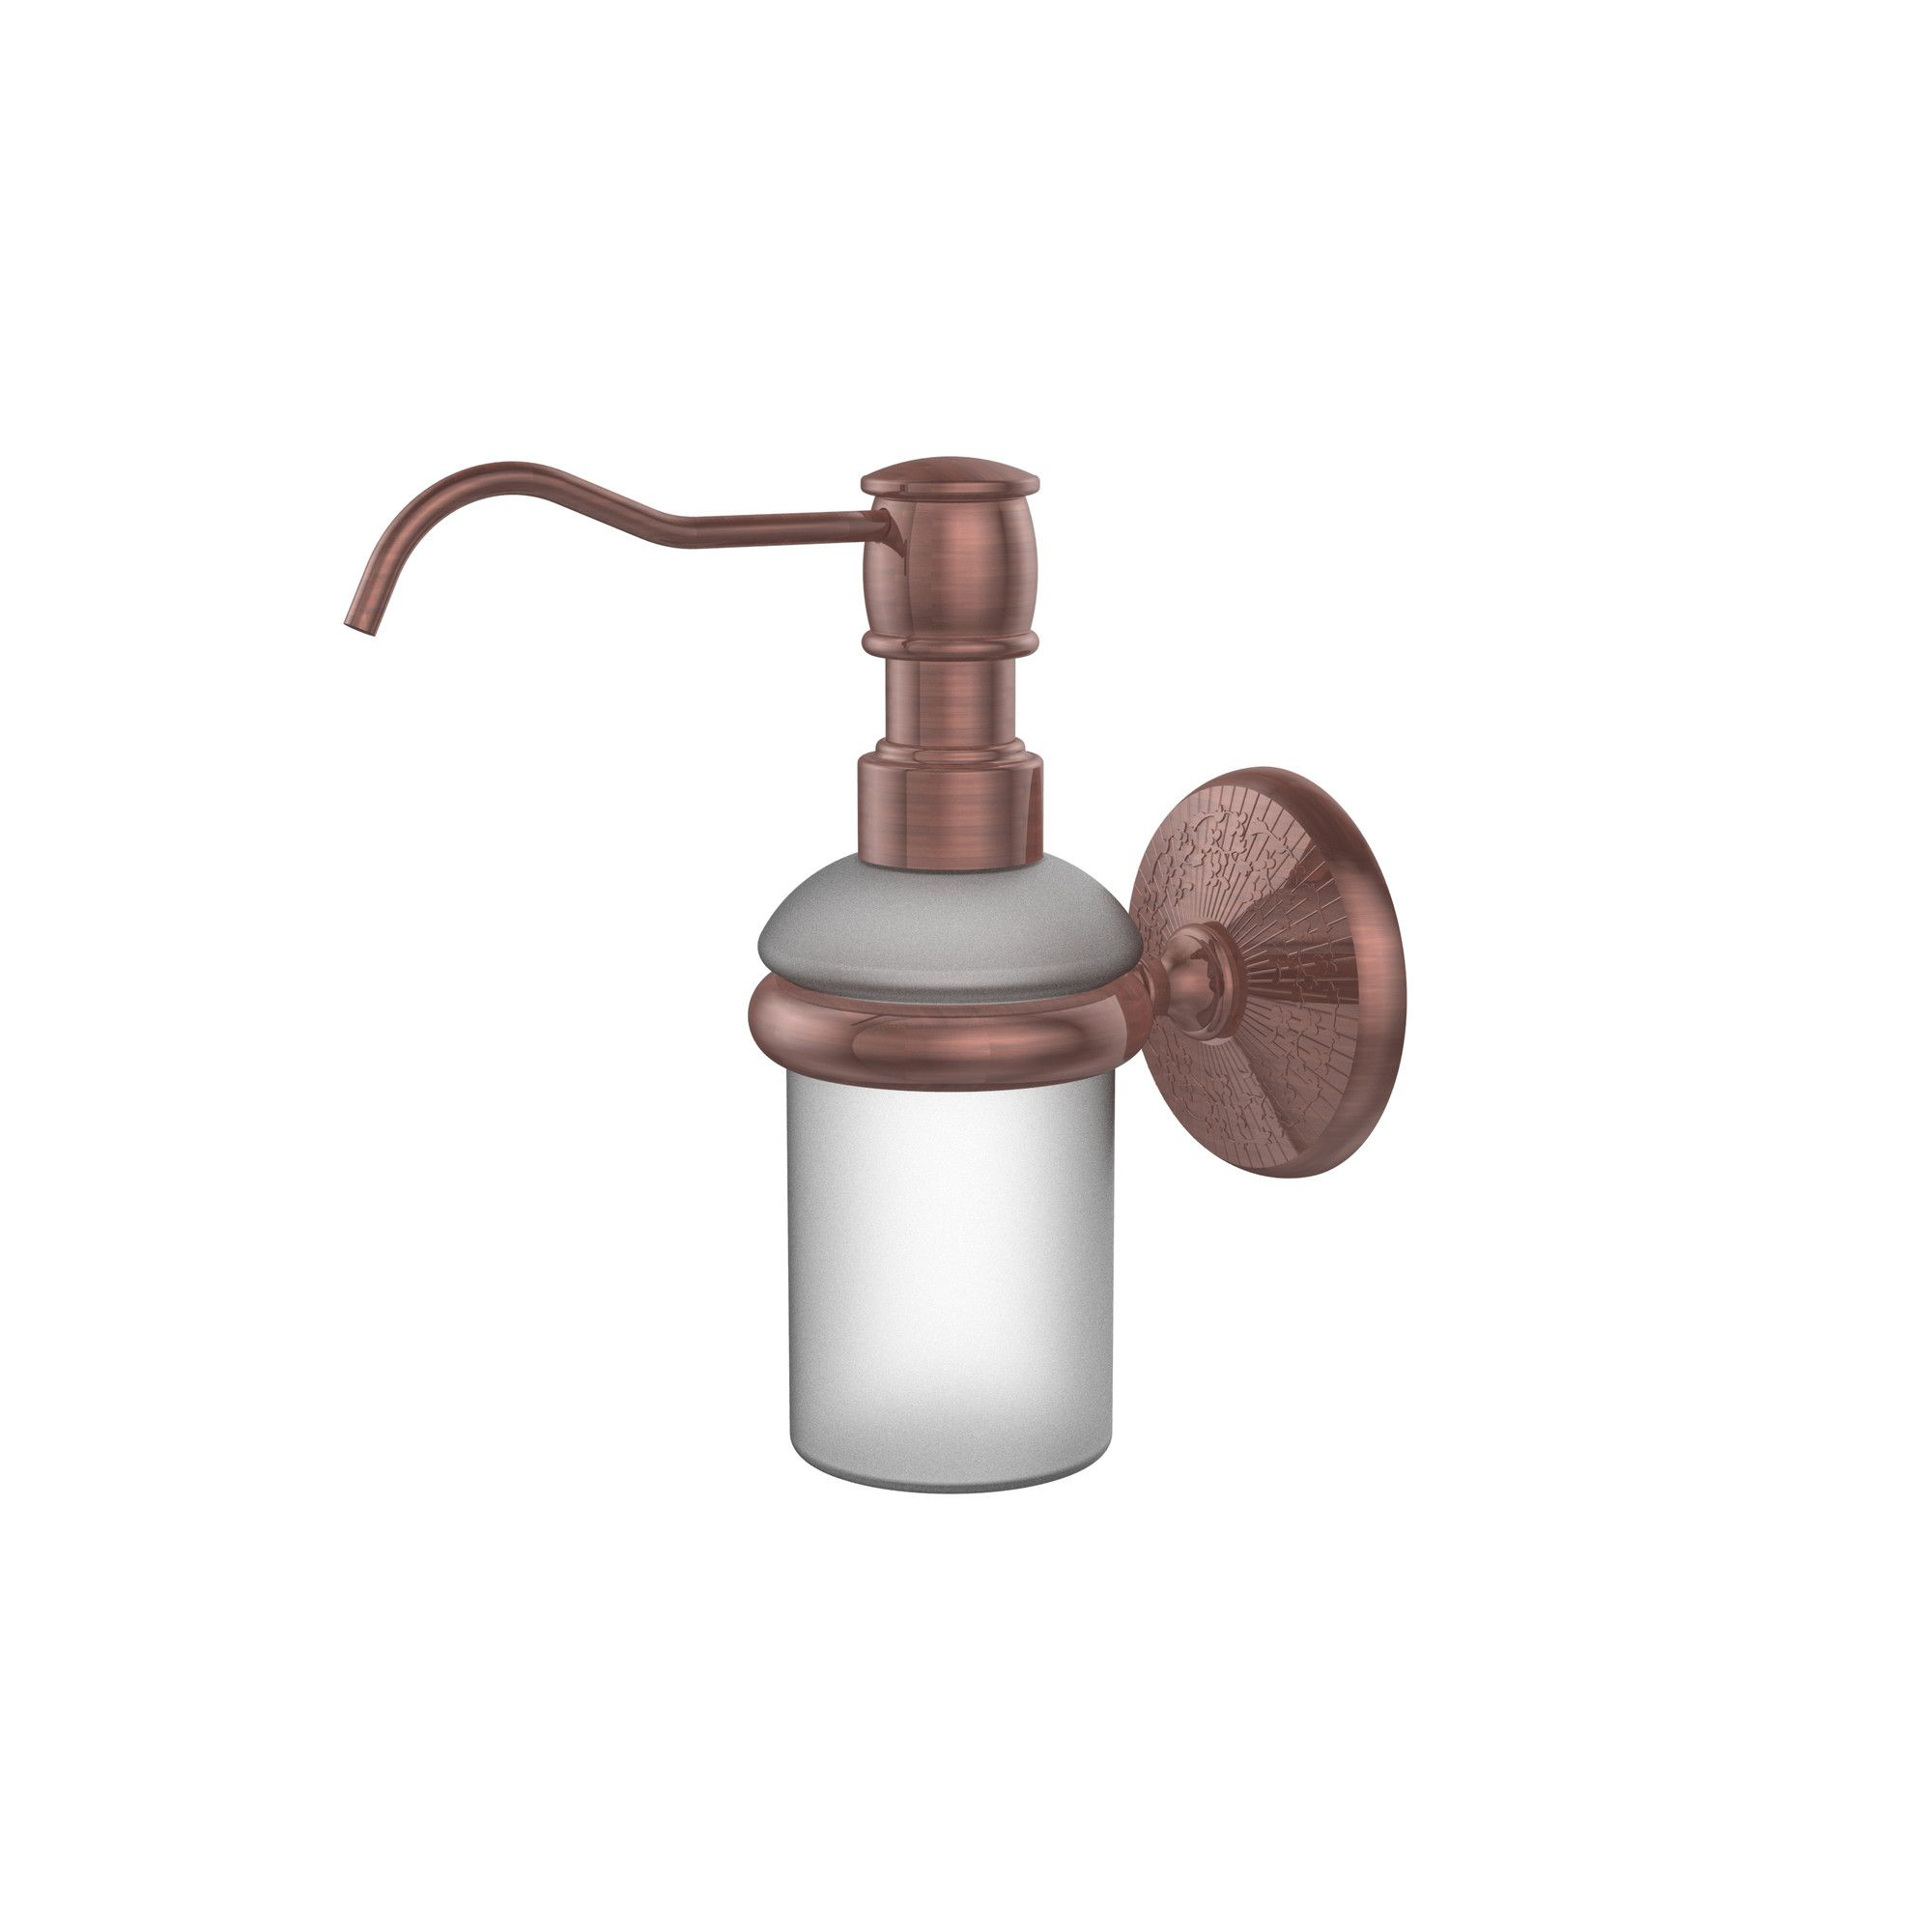 Monte Carlo Wall Mounted Soap Dispenser   Products   Pinterest ...